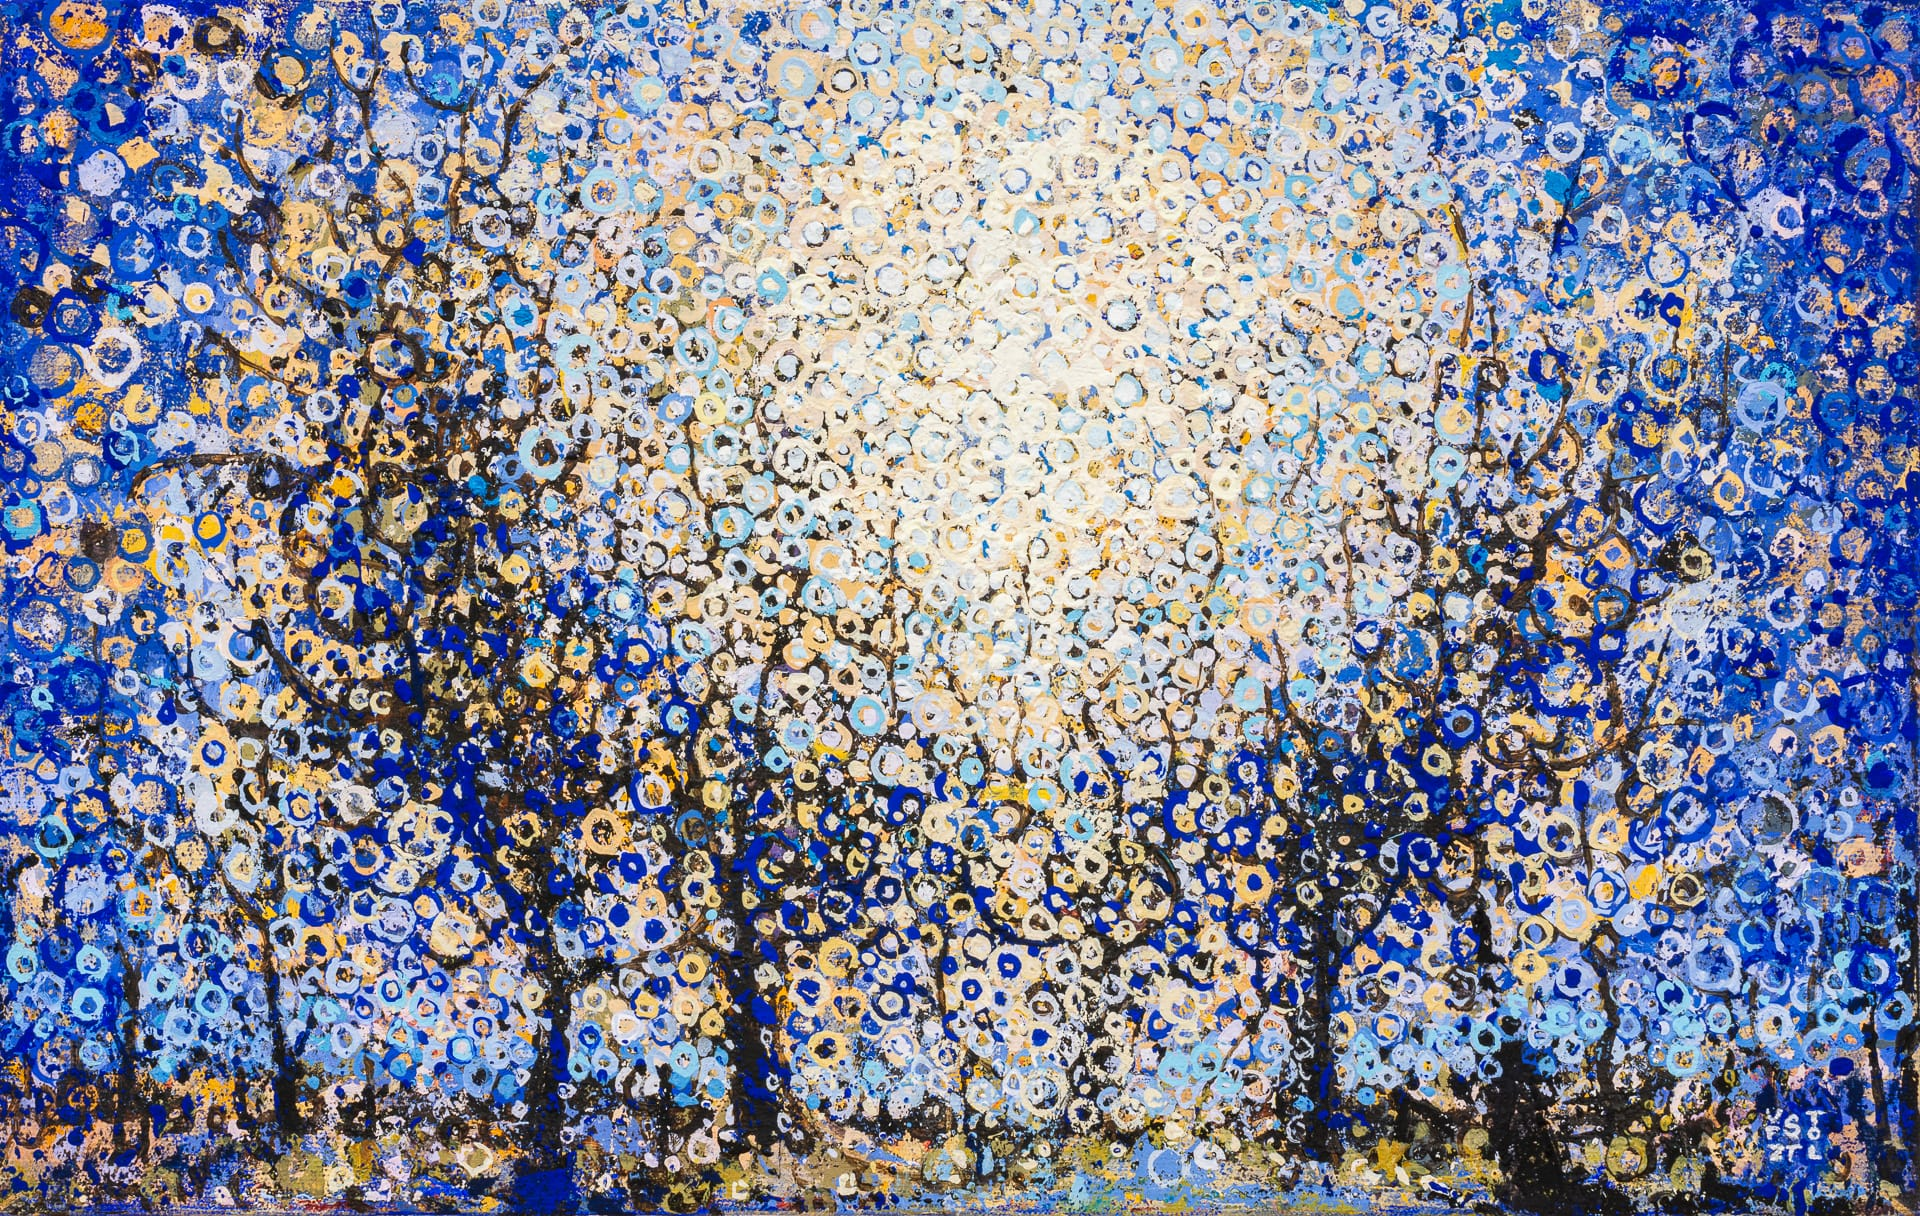 Light through the trees | The painting Held by Randall Stoltzfus